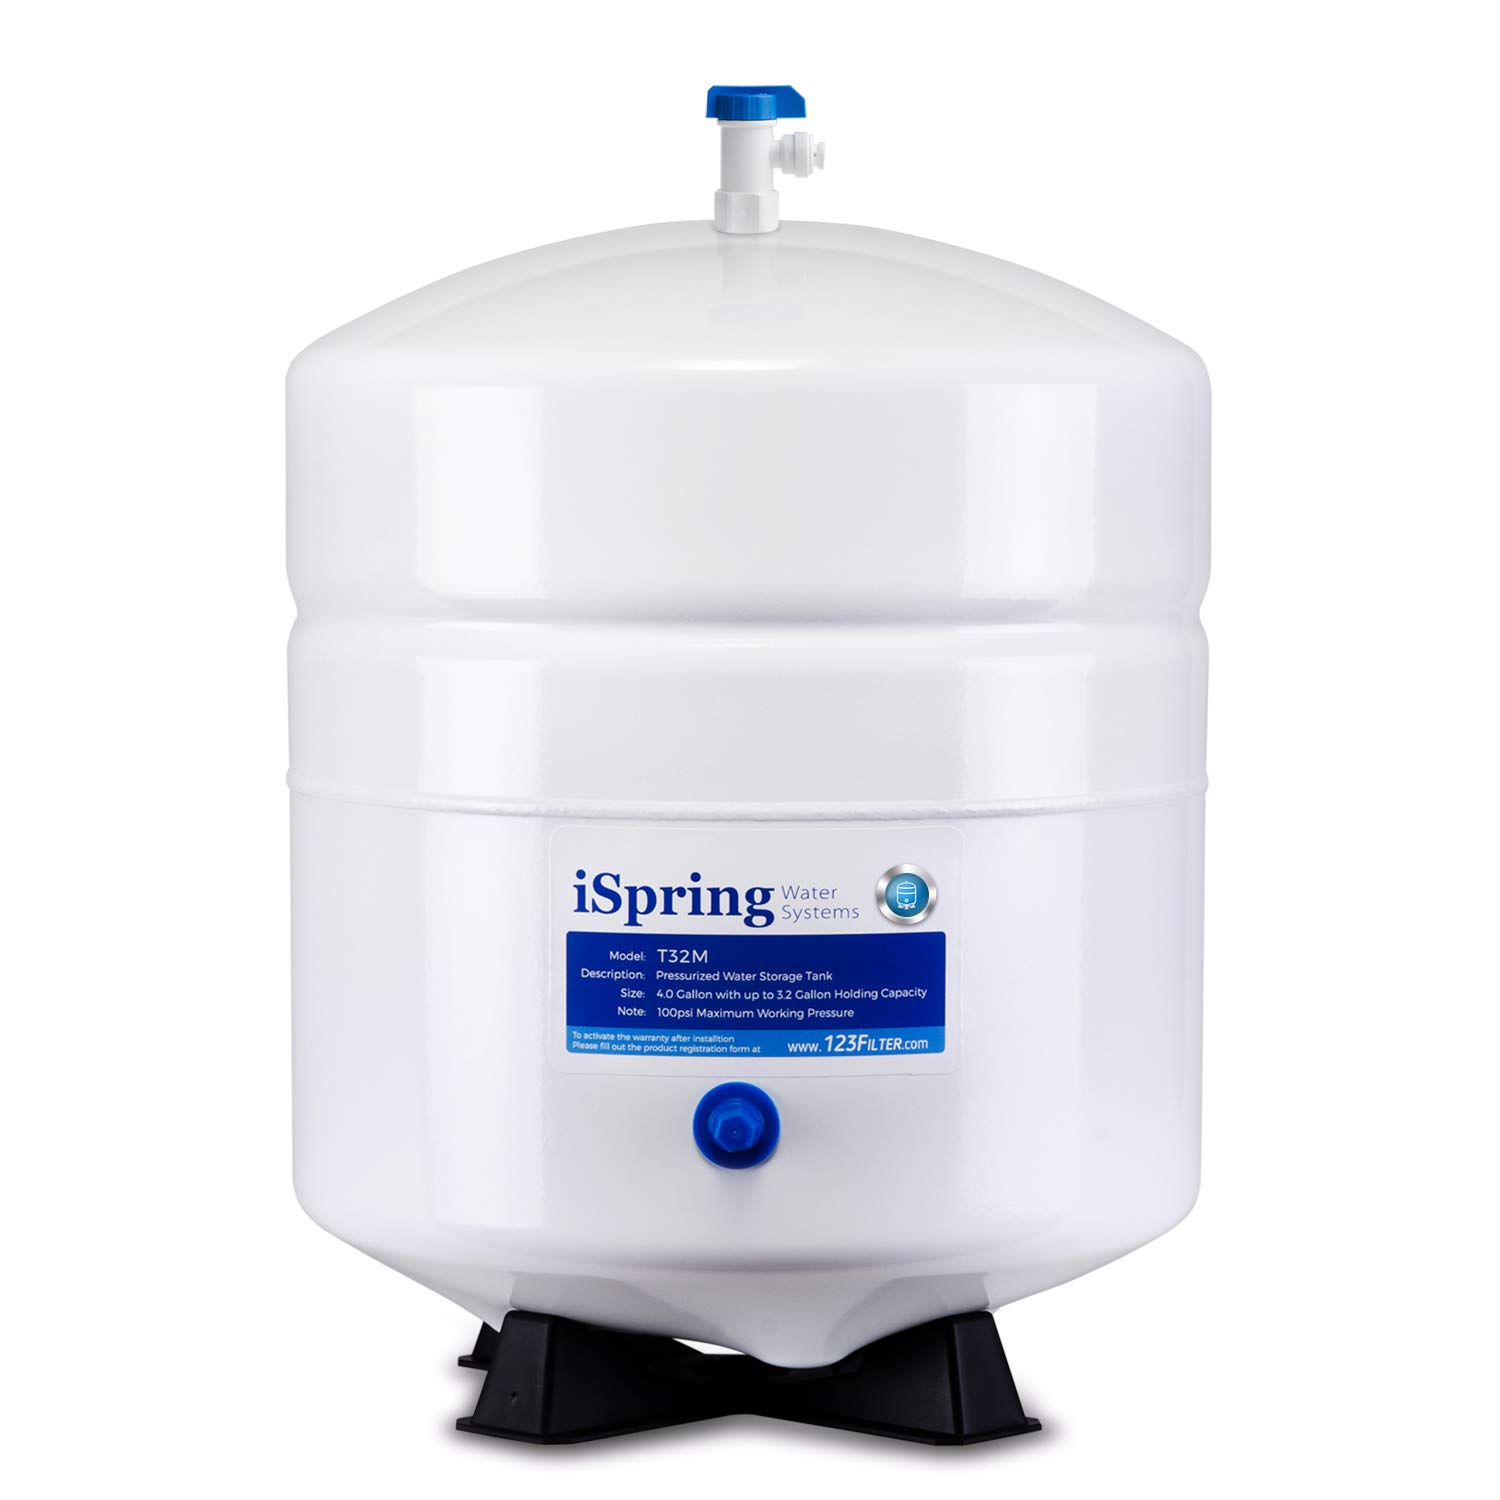 iSpring T32M Pressurized Water Storage Tank with with Ball Valve for Reverse Osmosis RO Systems, 4 Gallon by iSpring